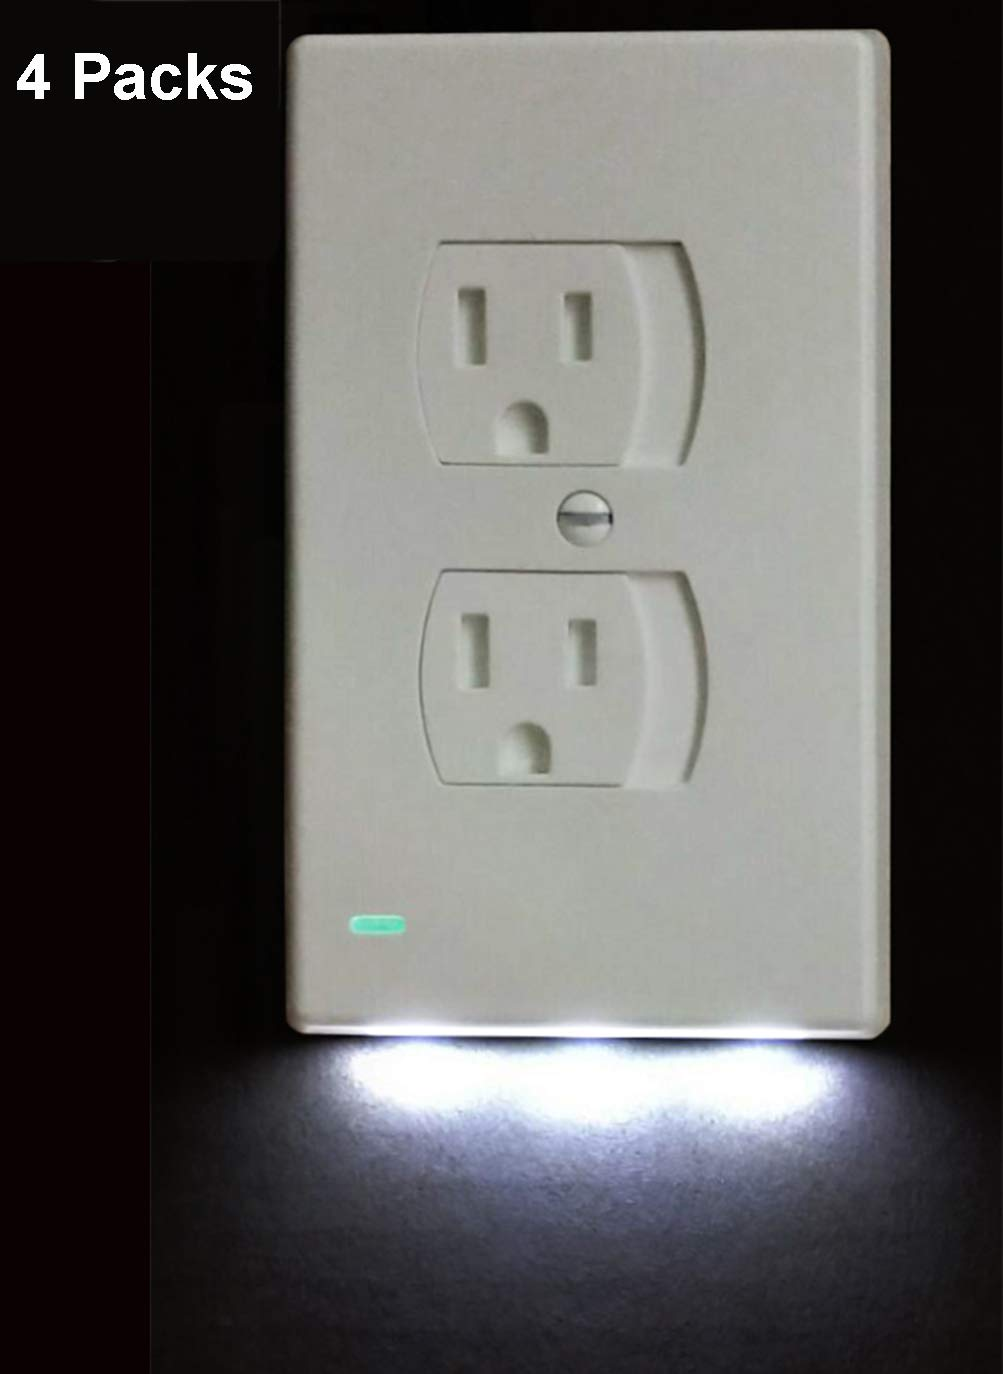 4 Pack Baby Proof Outlet Covers Self Closing with Night Light (Duplex, White) - by Warmword